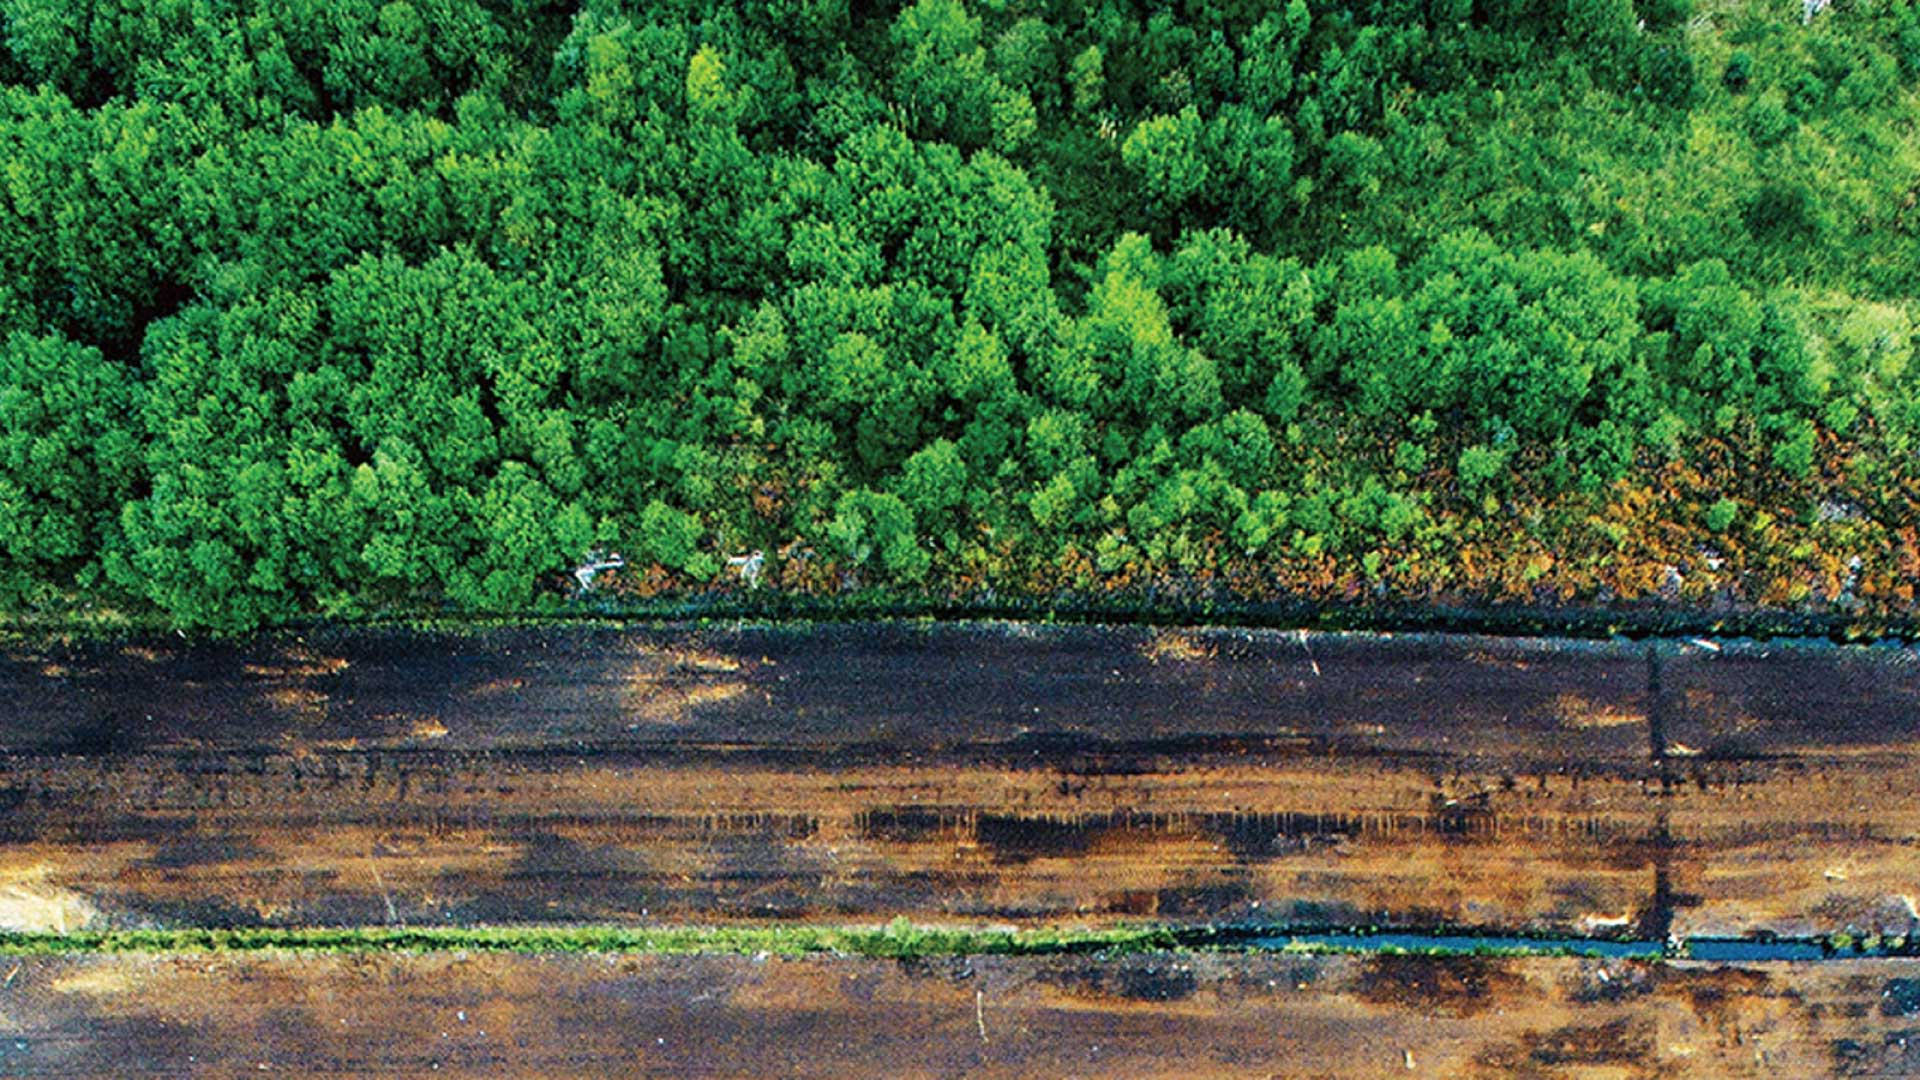 Aerial view of peatlands